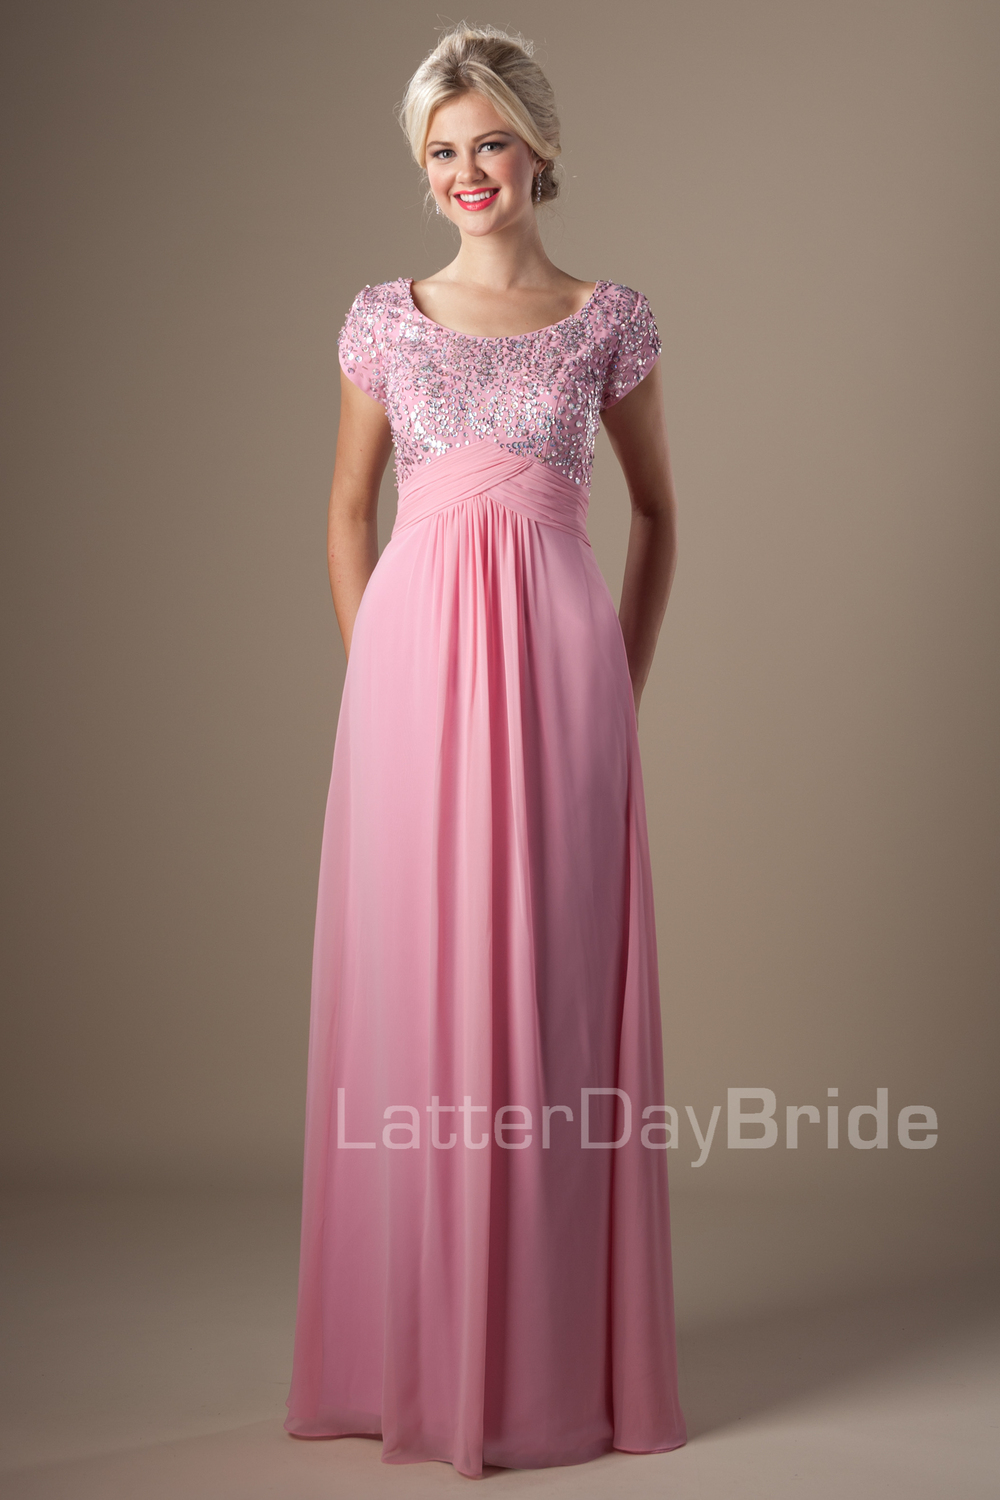 Sparkly Beaded Bodice Flowy Chiffon Pink Prom Long Dress Sequins ...